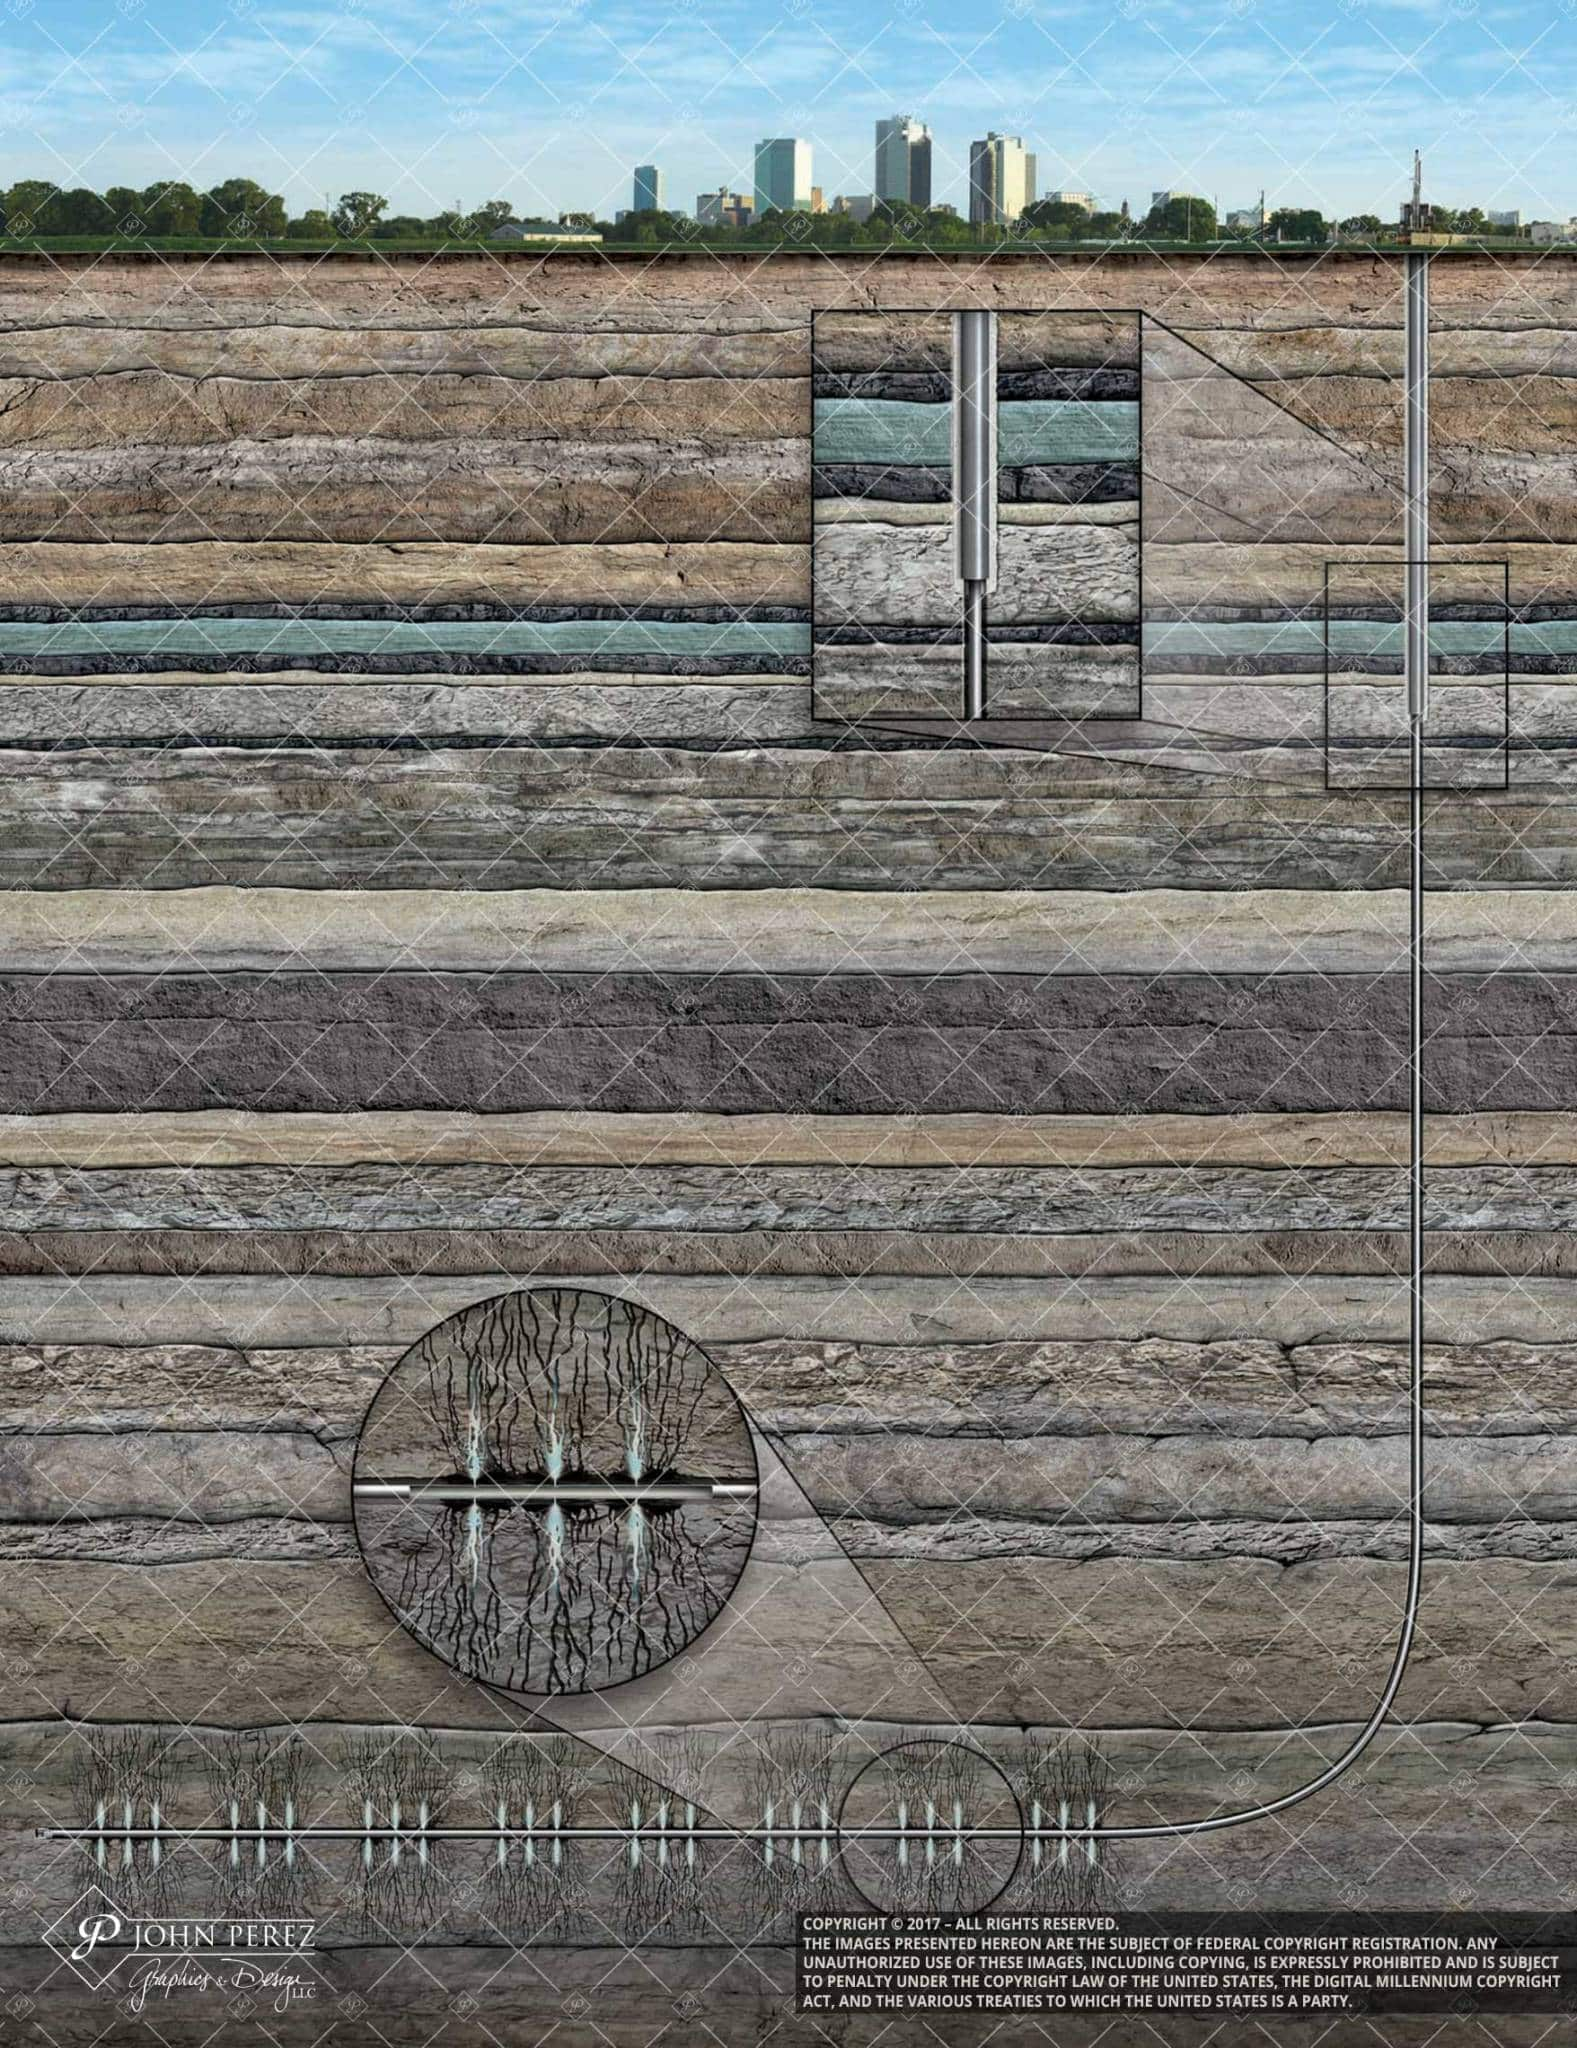 Horizontal Drilling Frac Under City, john perez graphics, oil gas illustration, oil gas schematic